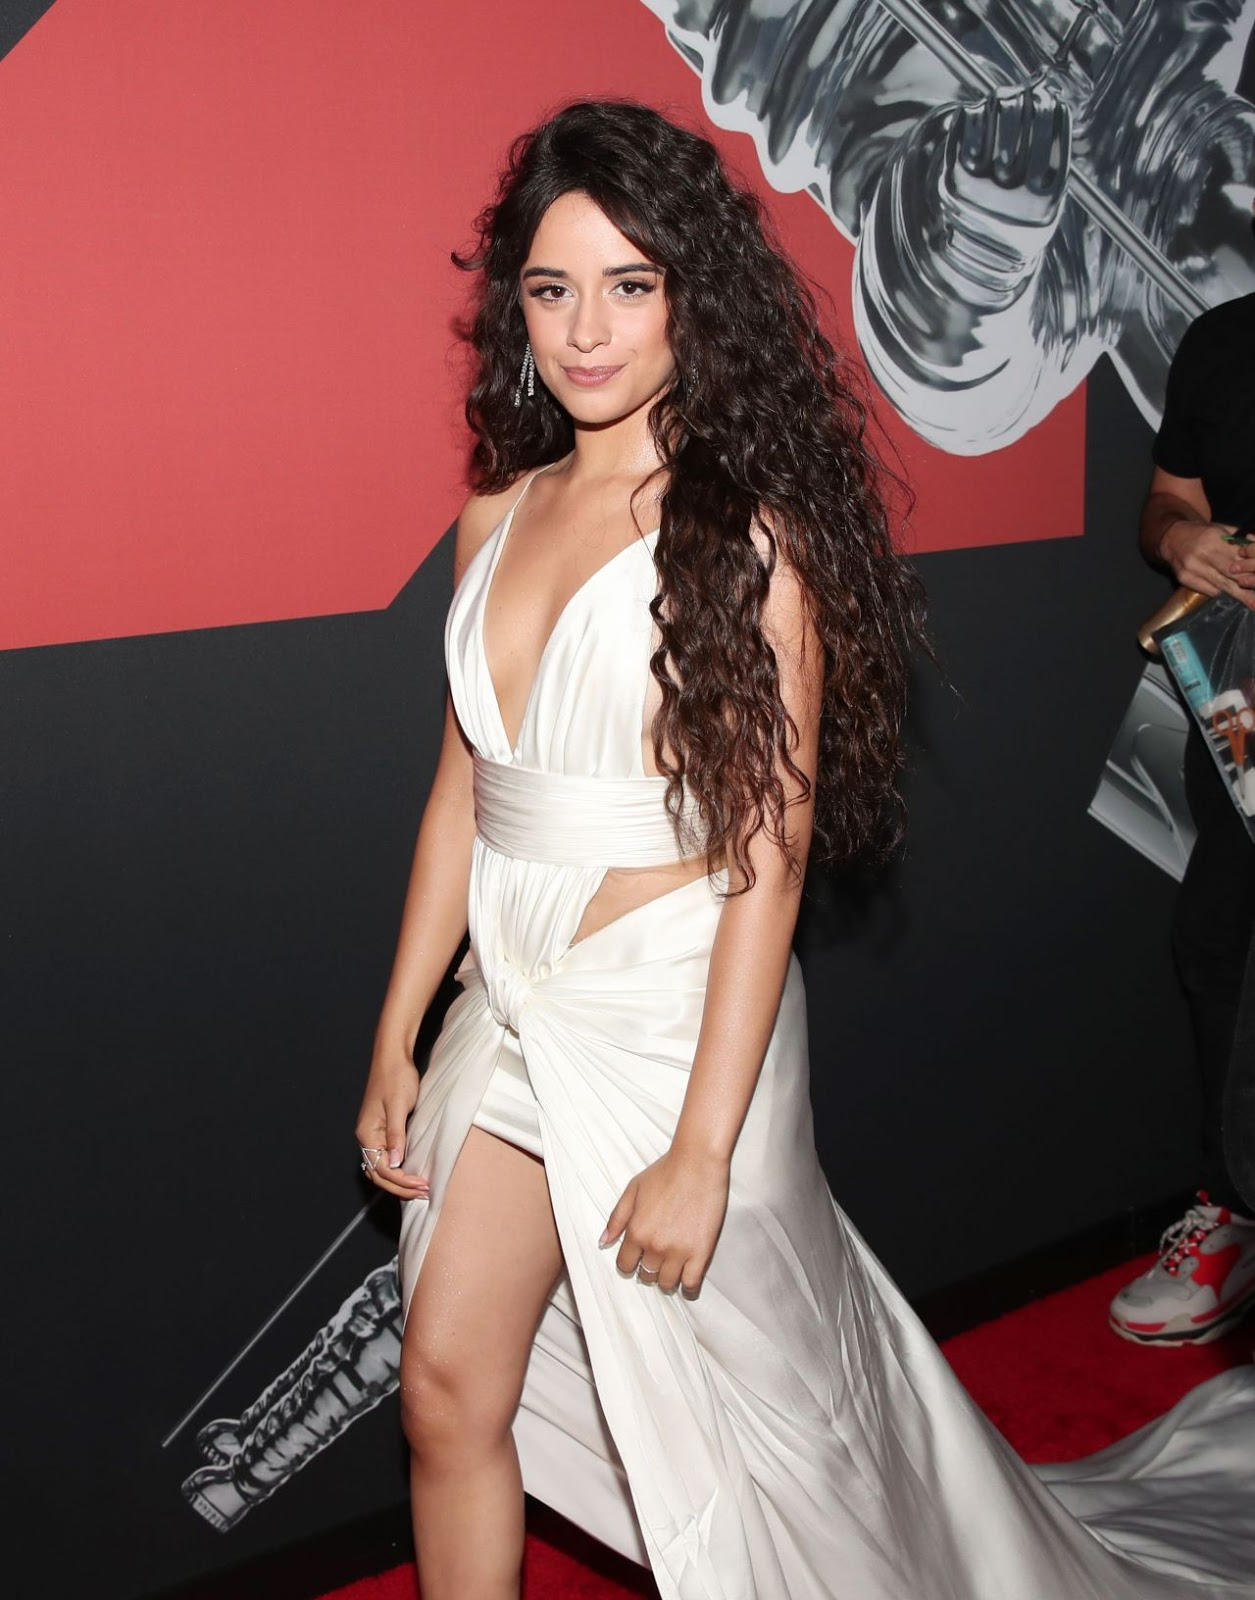 Camila Cabello goes braless for the 2019 MTV VMAs